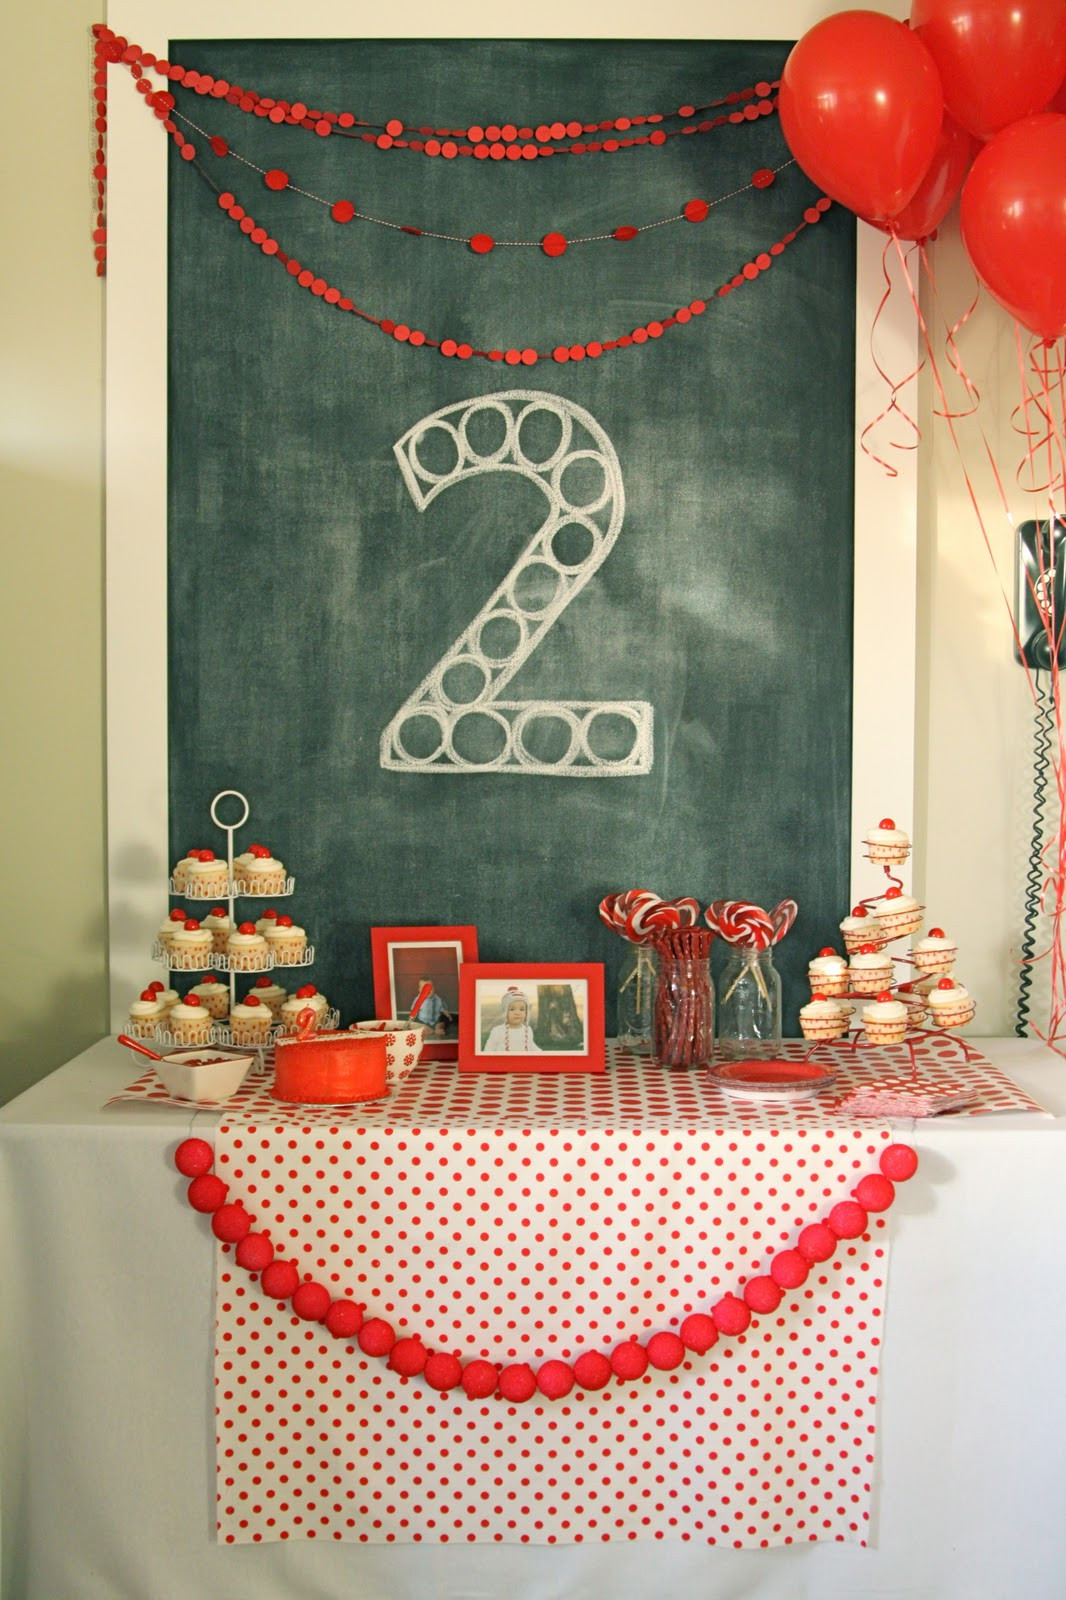 Two Years Old Birthday Party Ideas  red ball party levi's second birthday The Macs